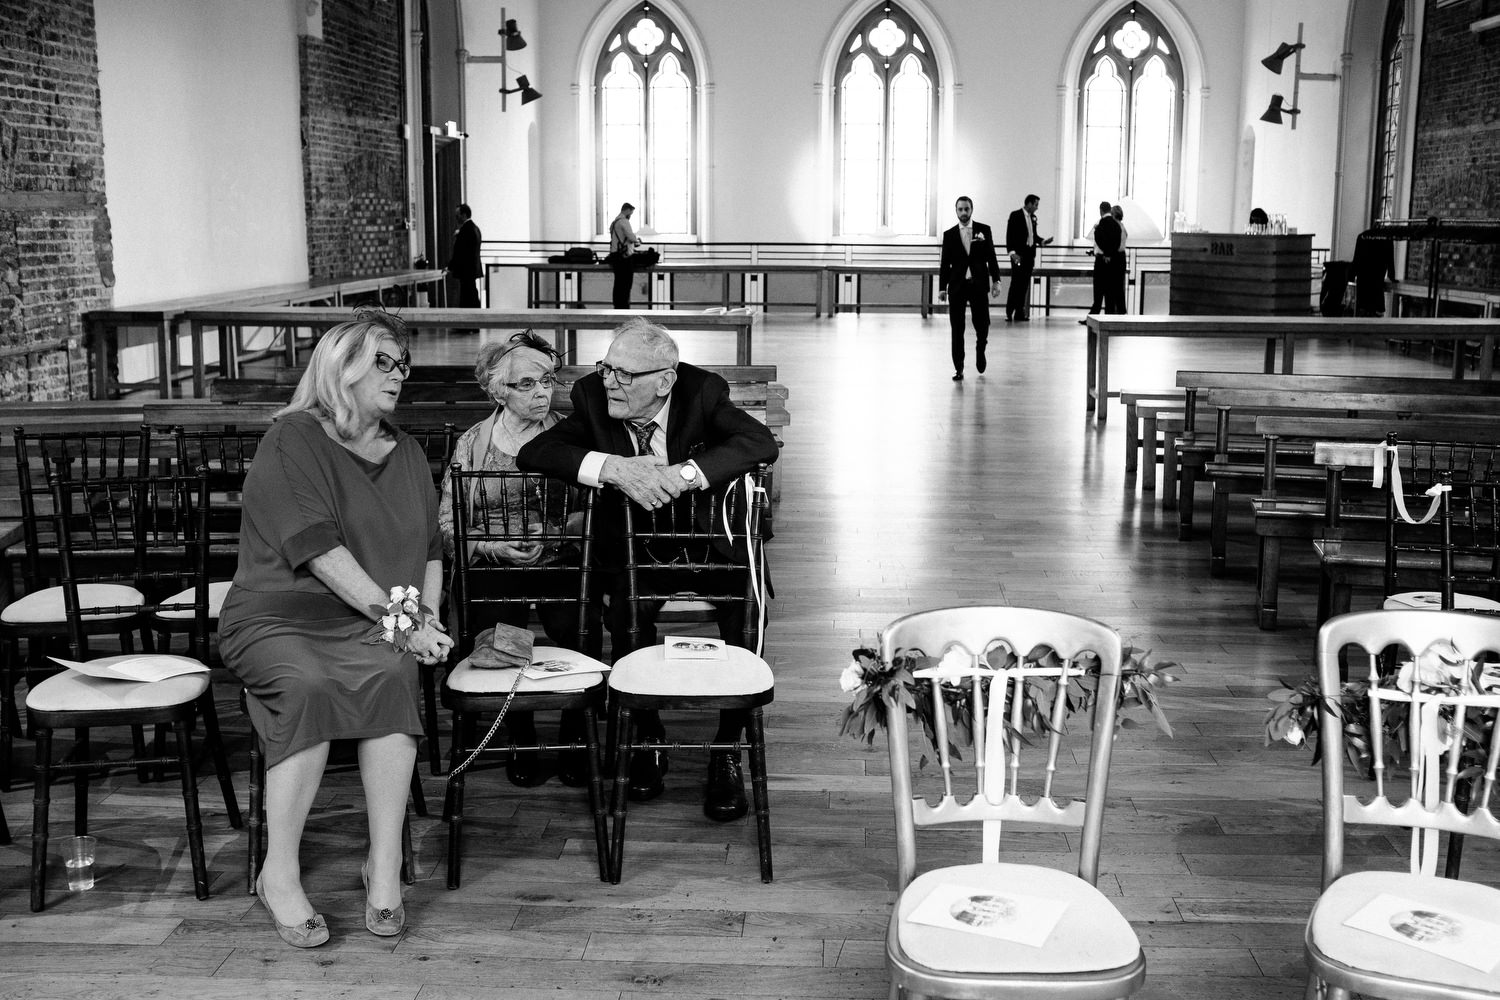 dmp0160_dublin_alley_photography_david_mcclelland_ceremony_humanist_documentary_theatre_smock_wedding_photographer